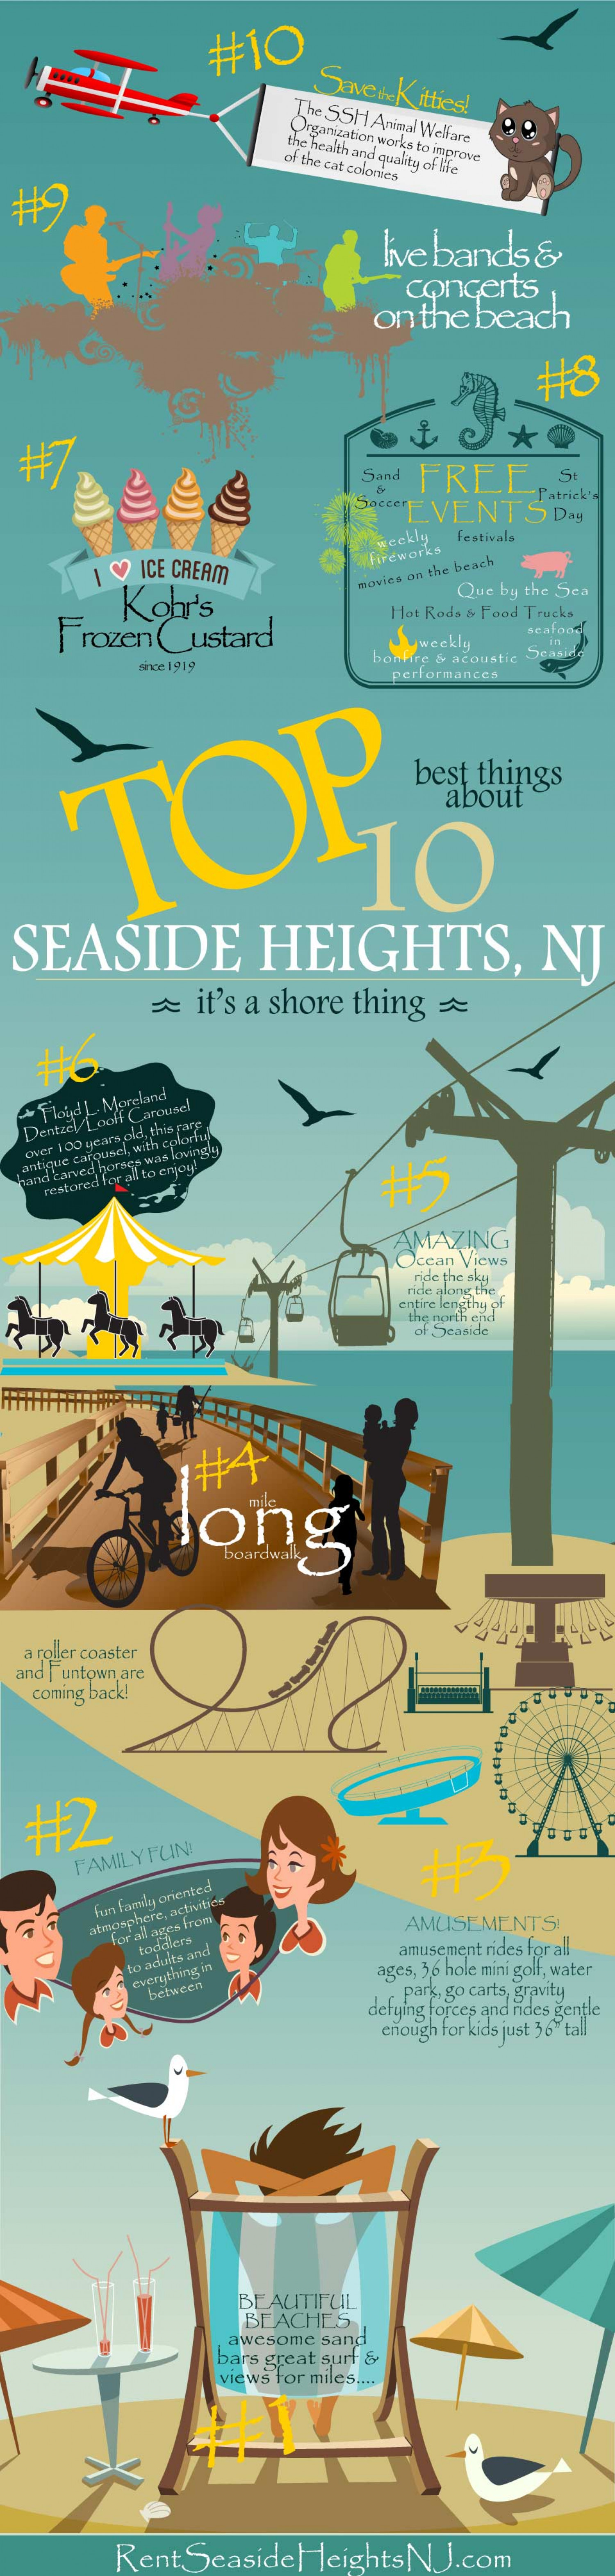 Top 10 Things About Seaside Heights NJ Infographic